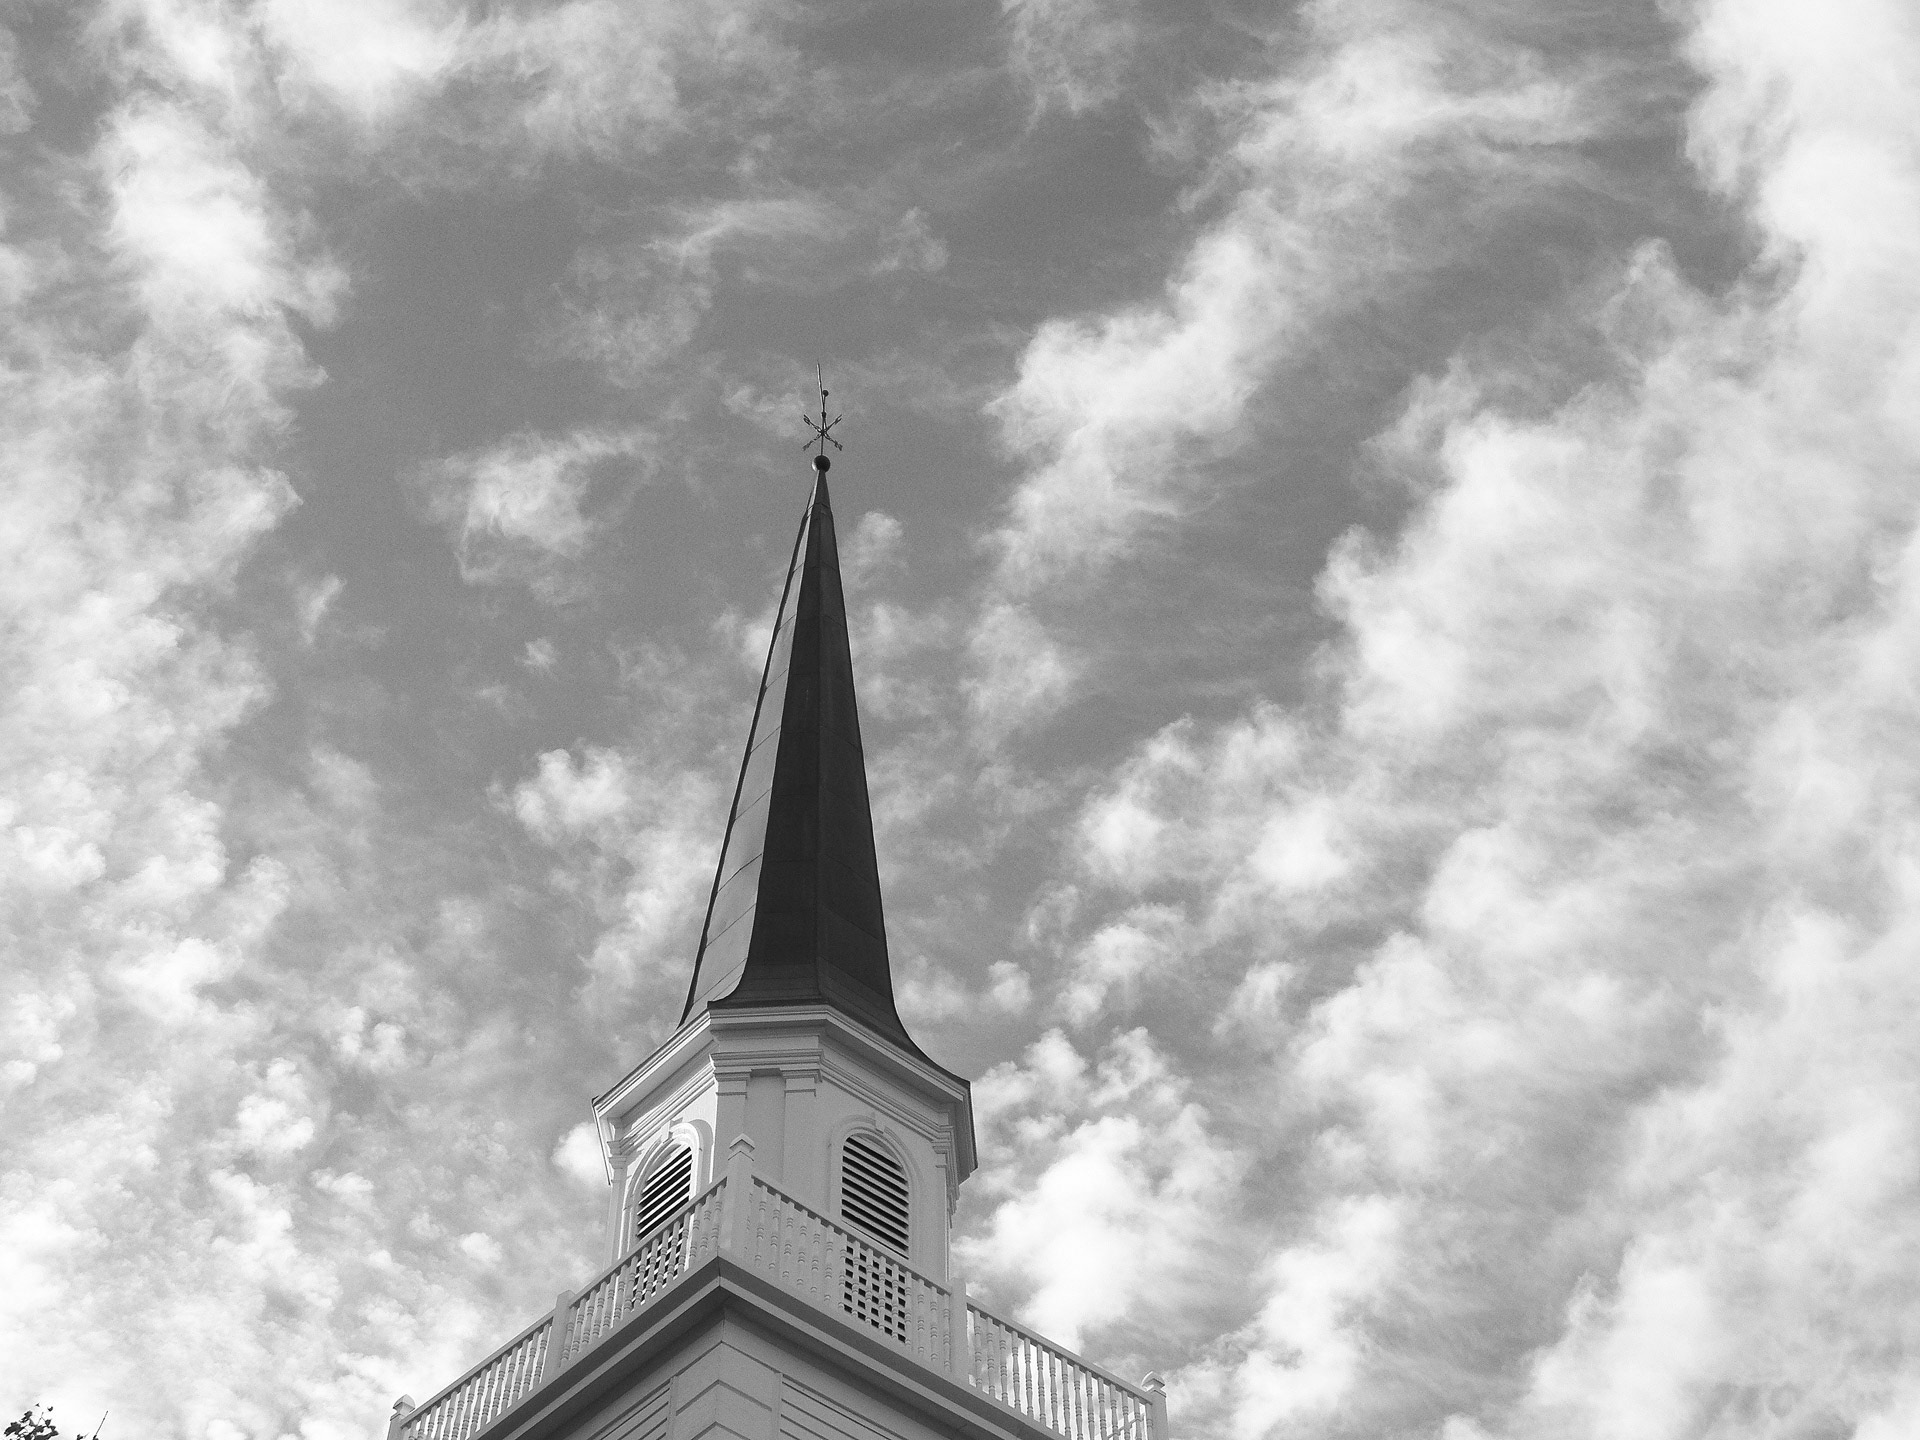 Church steeple in black and white